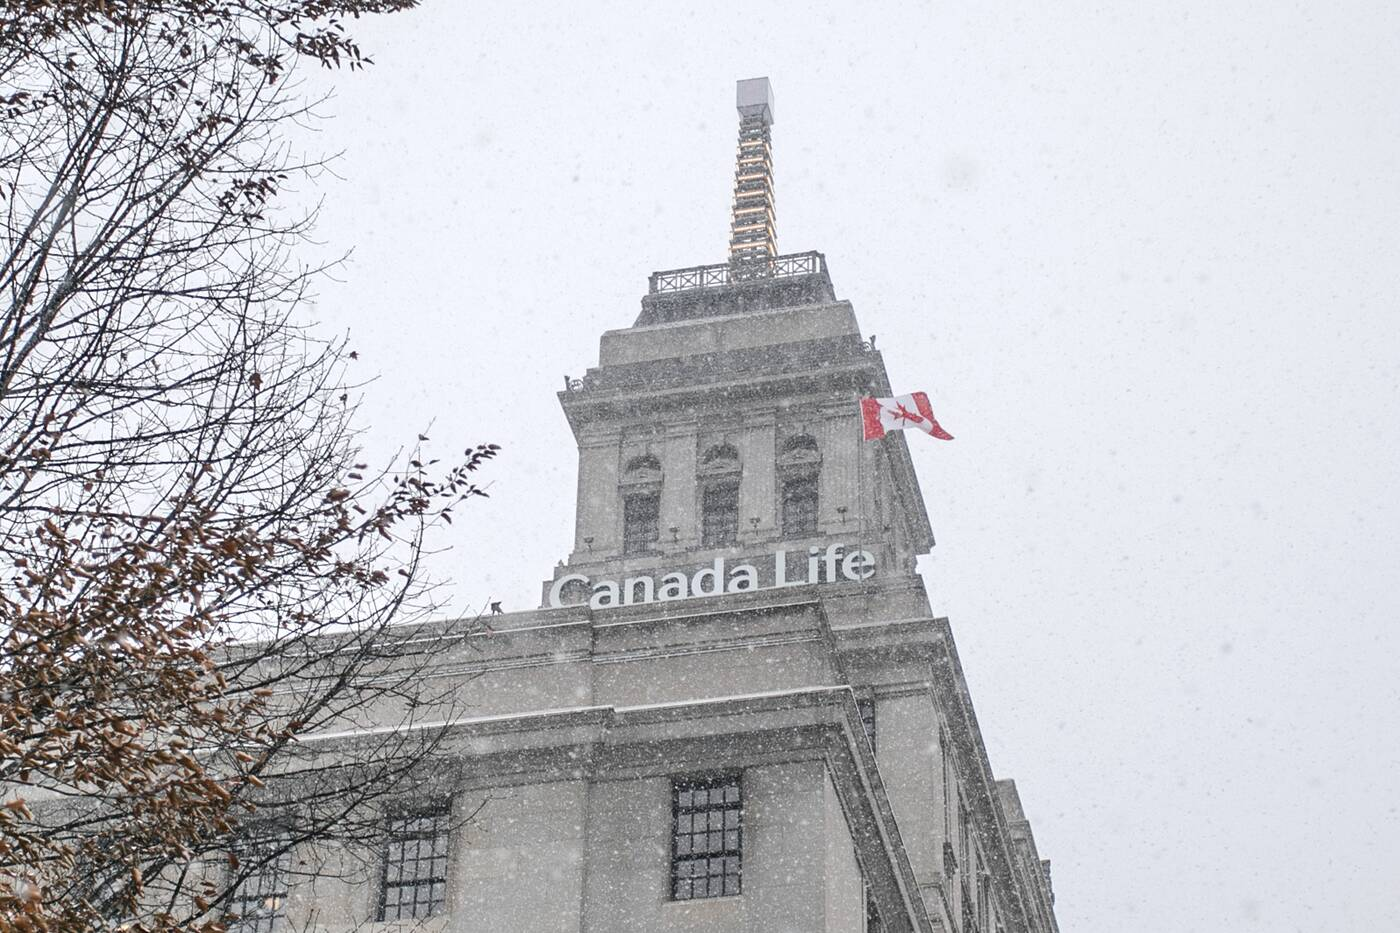 weather beacon canada life toronto